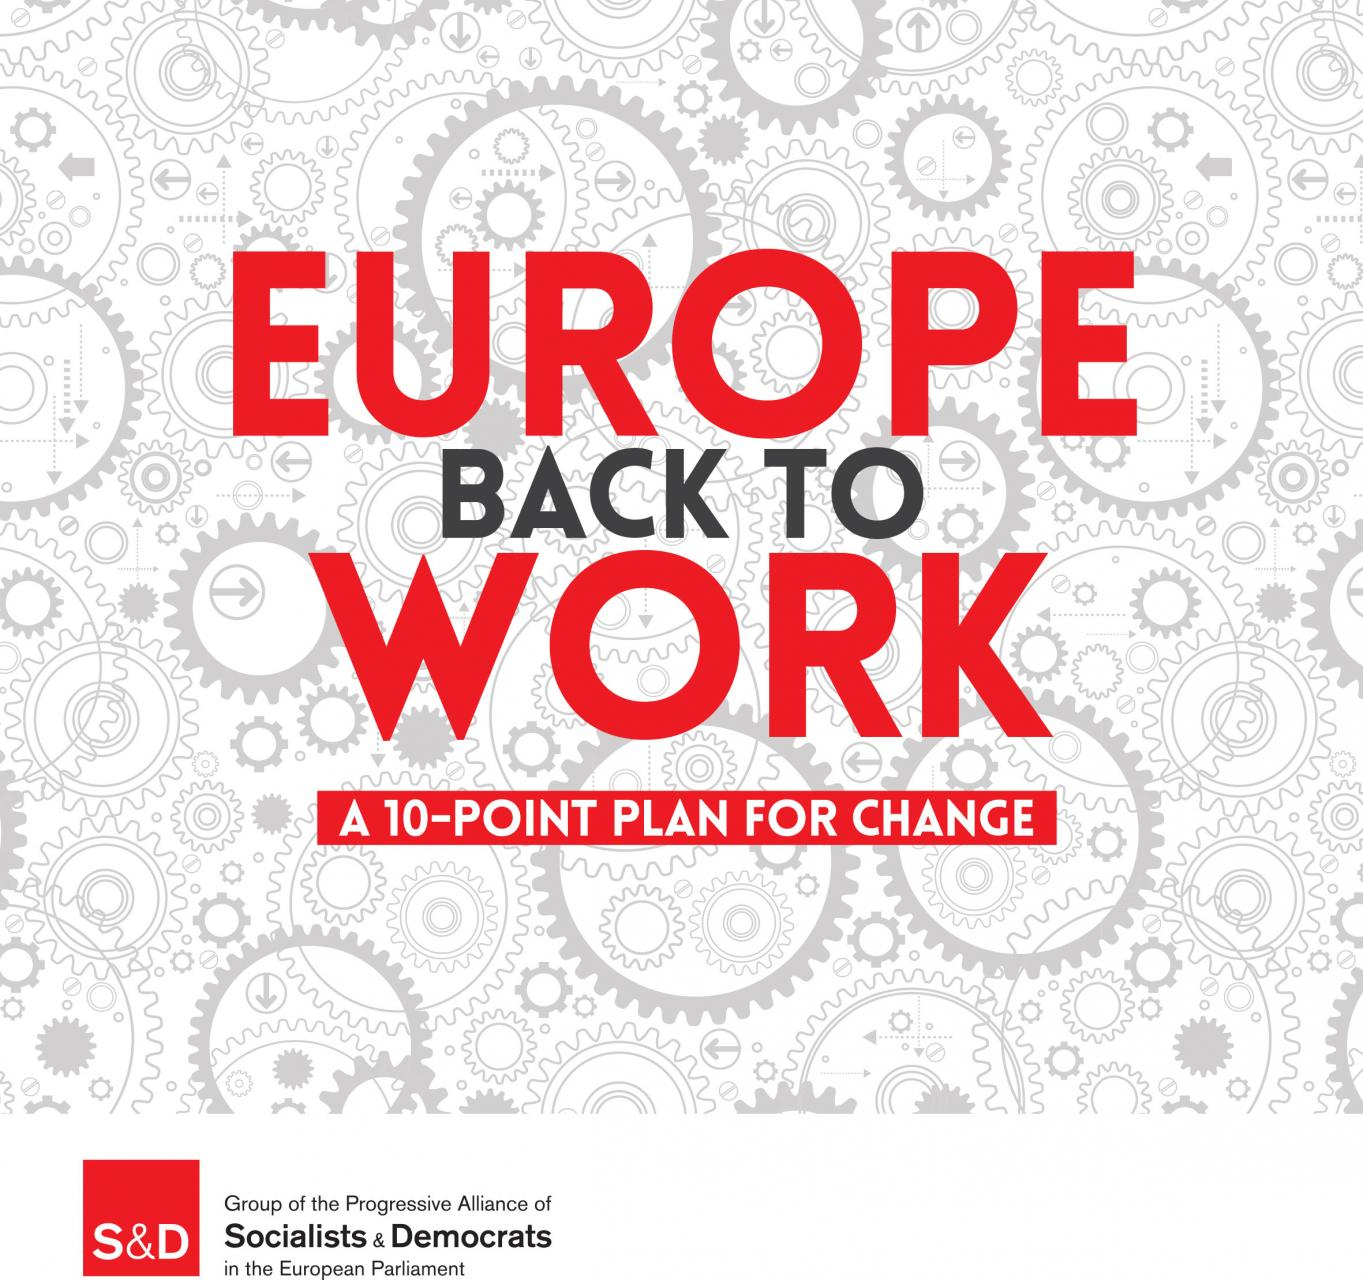 Europe back to work.  A 10-point plan for change